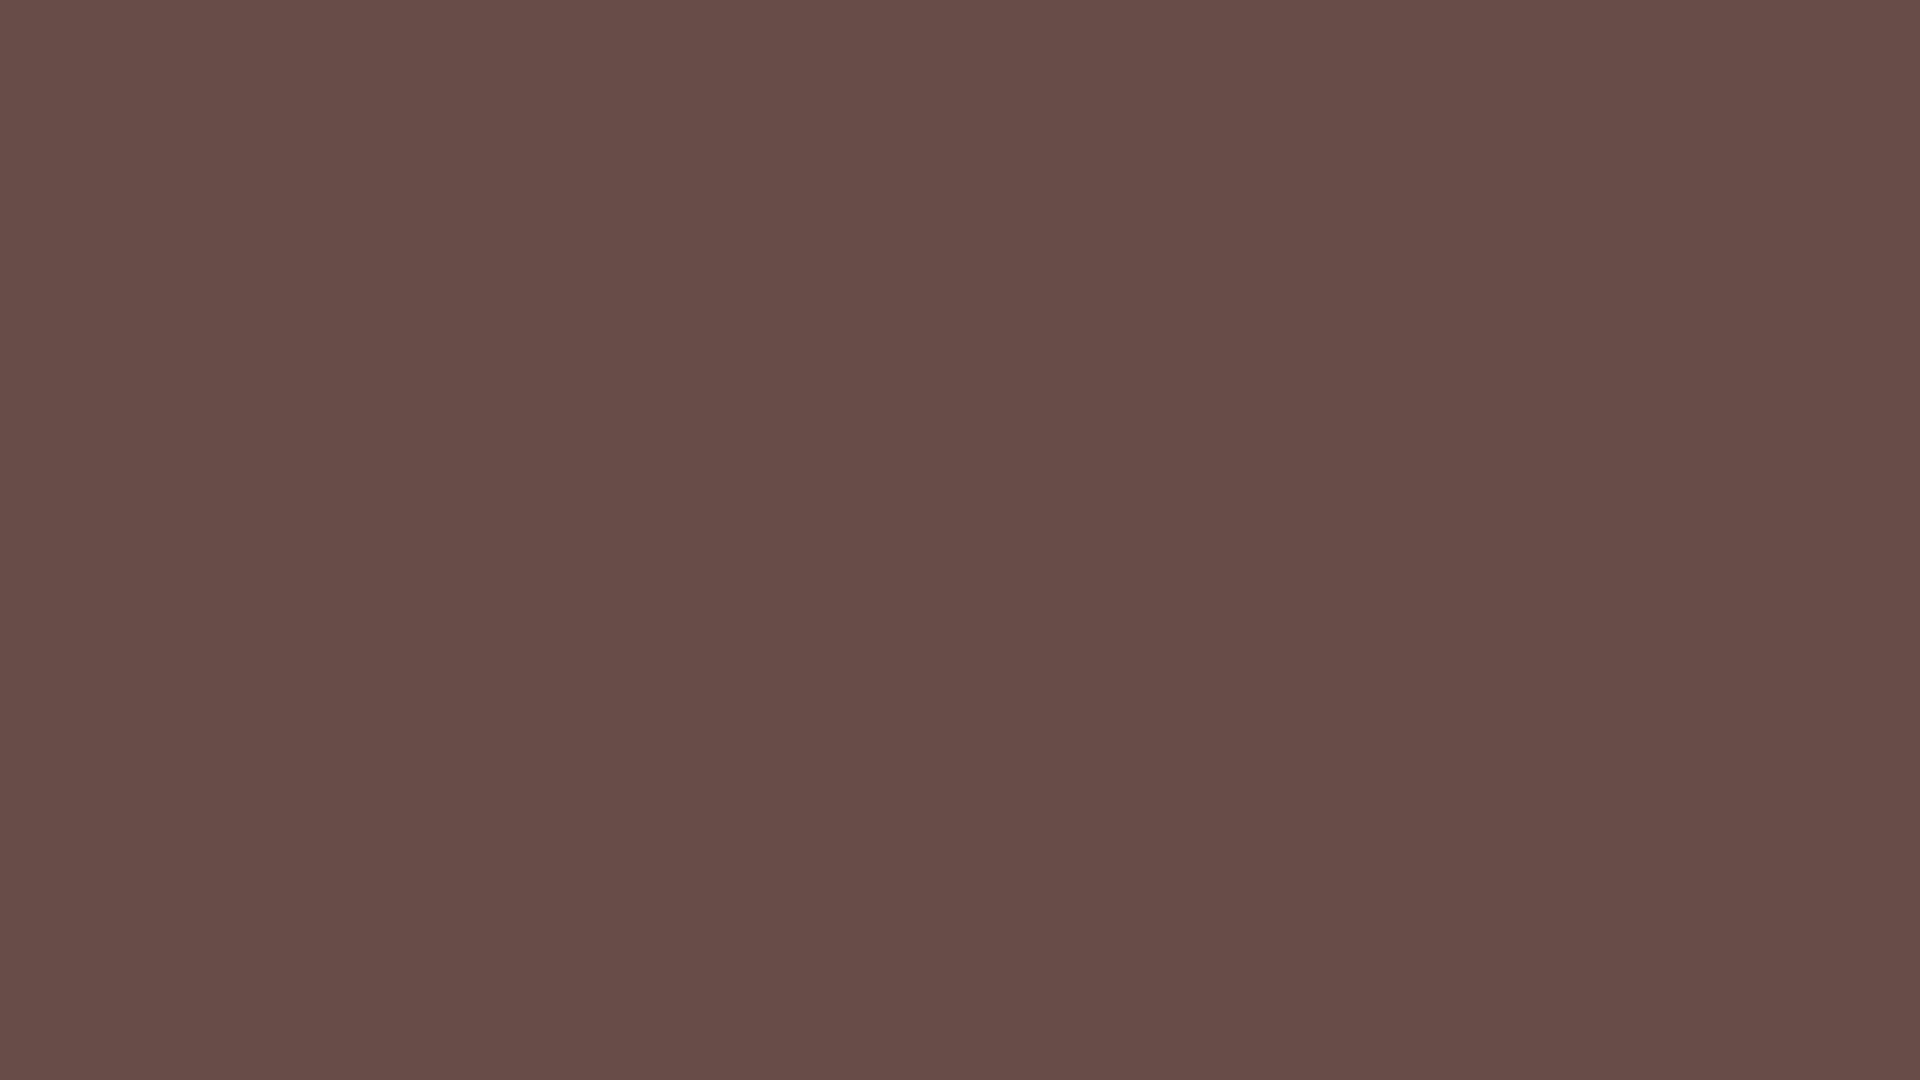 1920x1080 Medium Taupe Solid Color Background